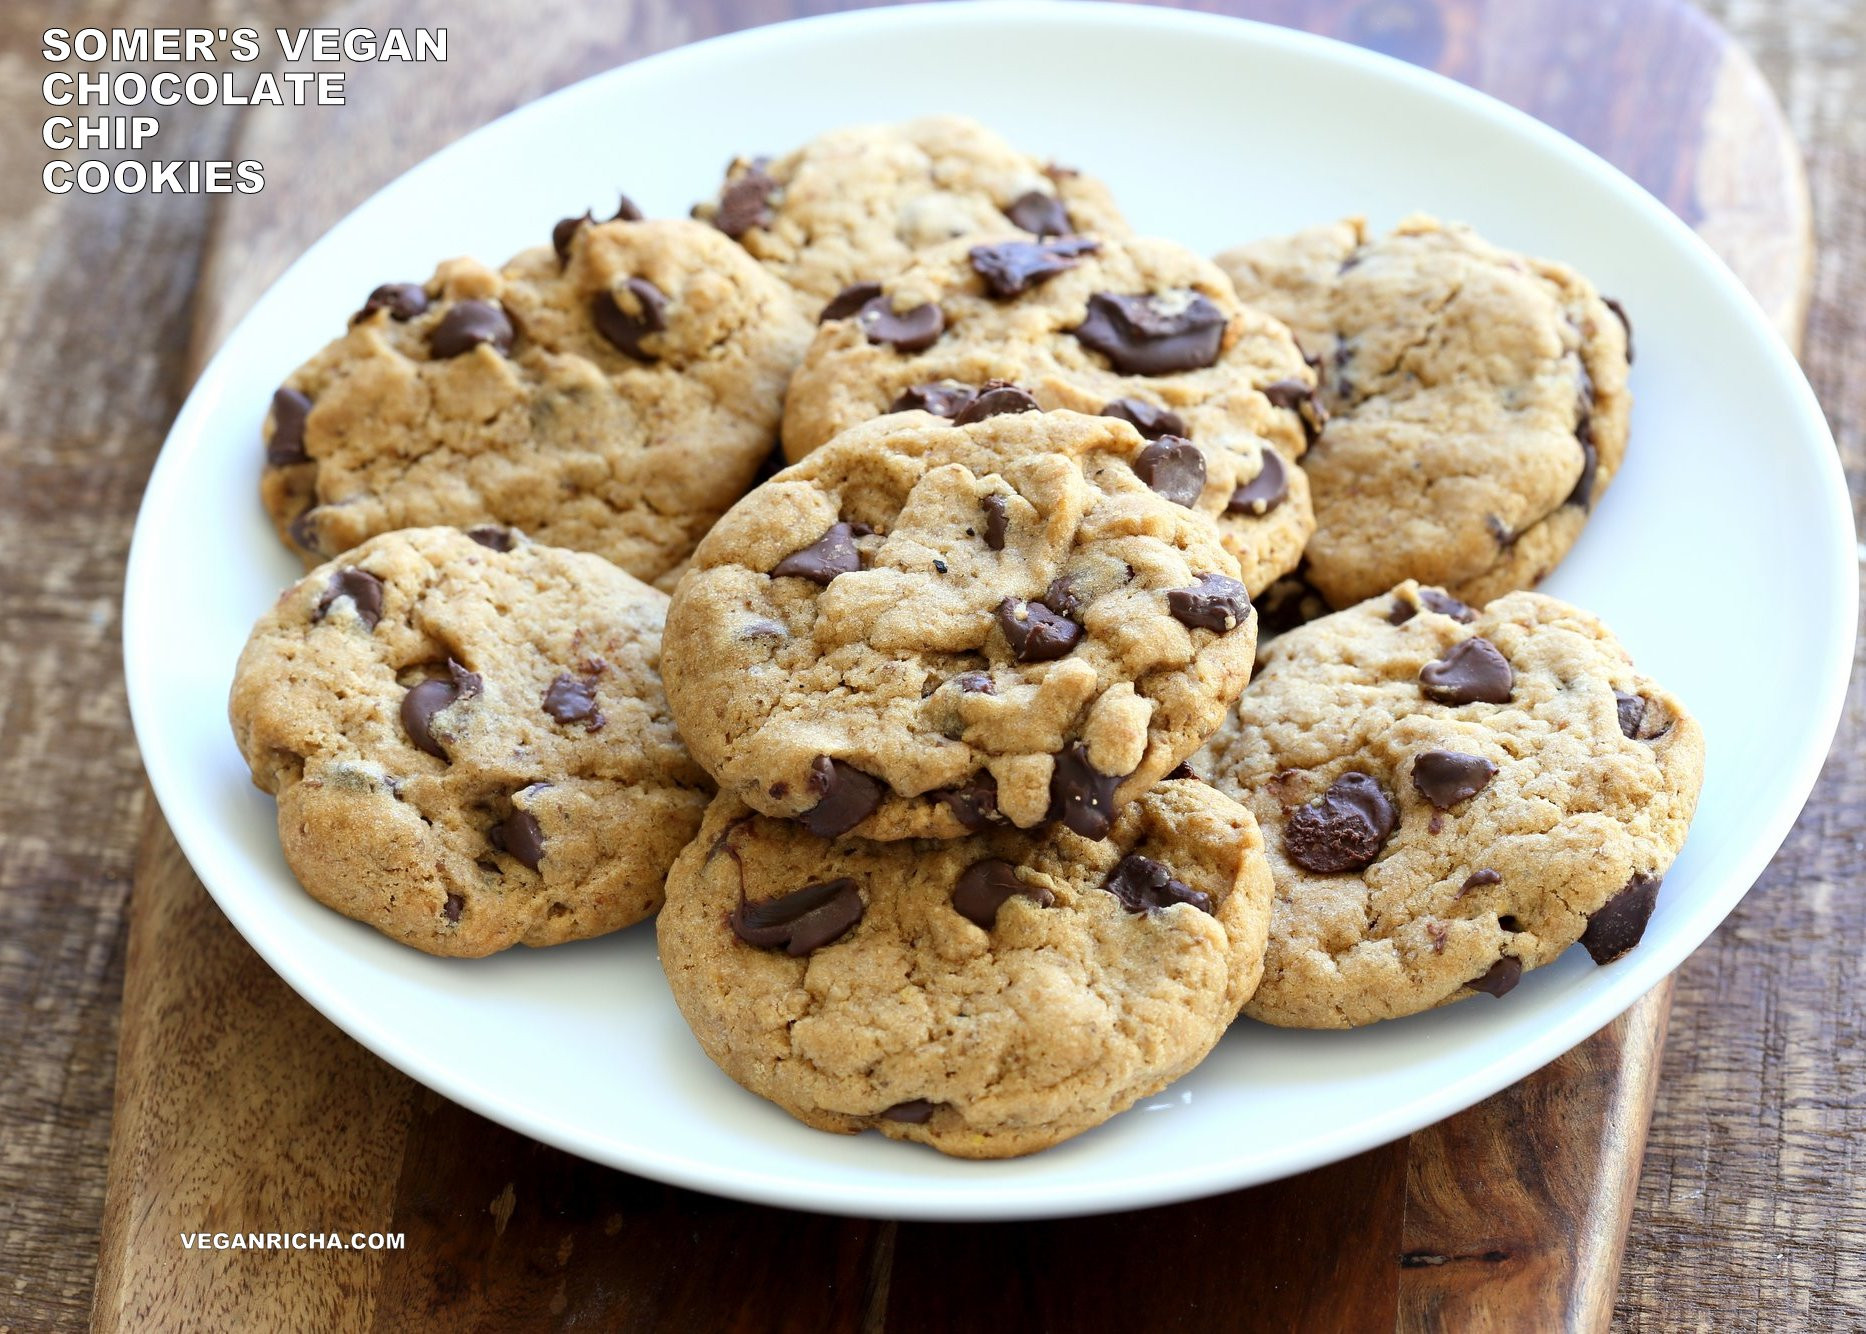 Vegan Chocolate Chip Cookies Brand  Vegan Chocolate Chip Cookies with Coconut Oil Palm Oil